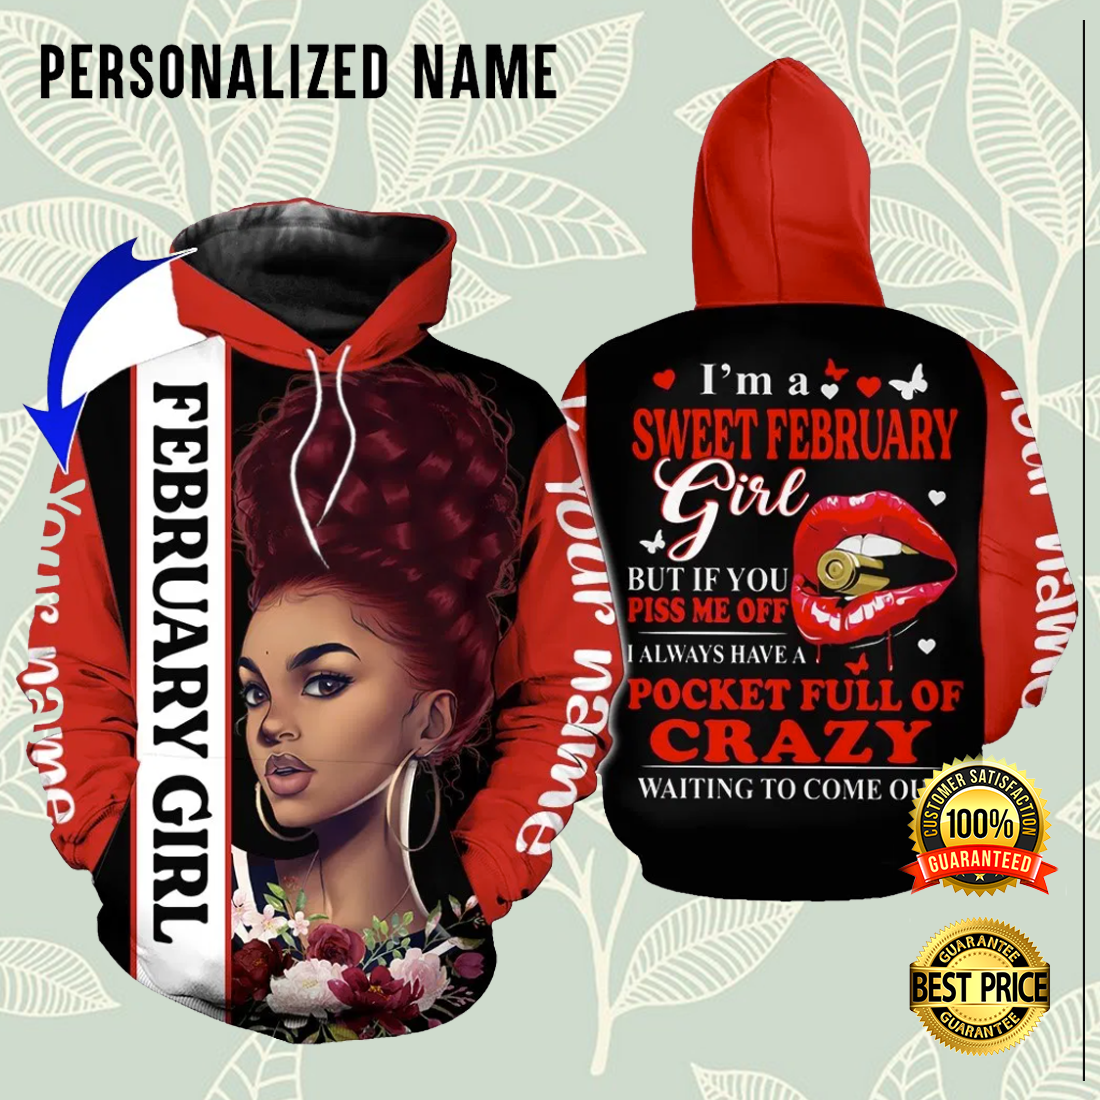 PERSONALIZED I'M A SWEET FEBRUARY GIRL ALL OVER PRINTED 3D HOODIE 5